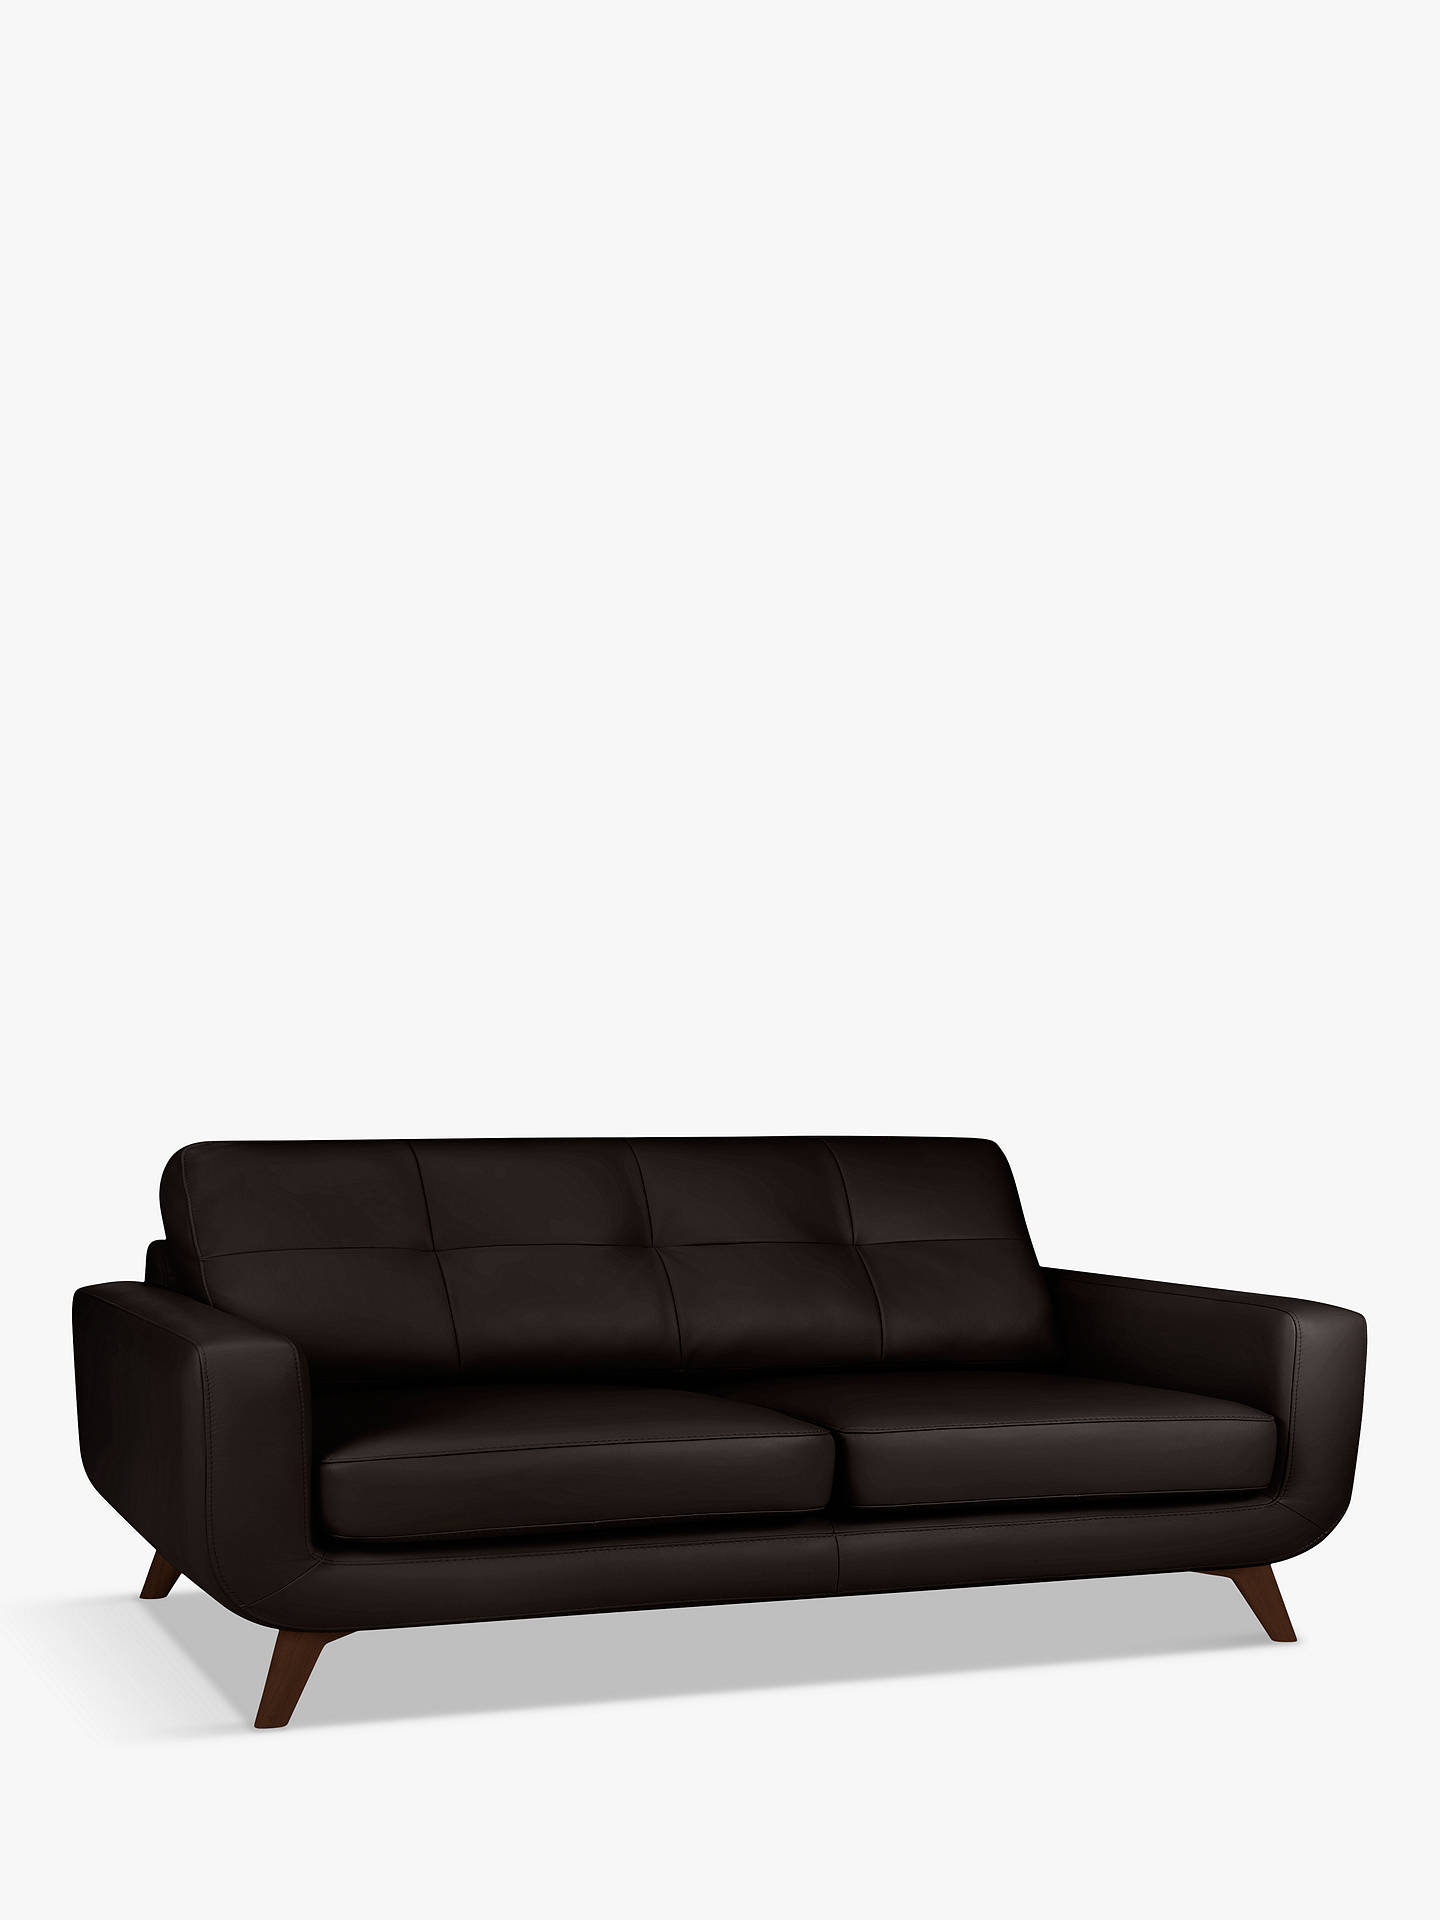 Buy John Lewis & Partners Barbican Grand 4 Seater Leather Sofa, Dark Leg, Demetra Charcoal Online at johnlewis.com